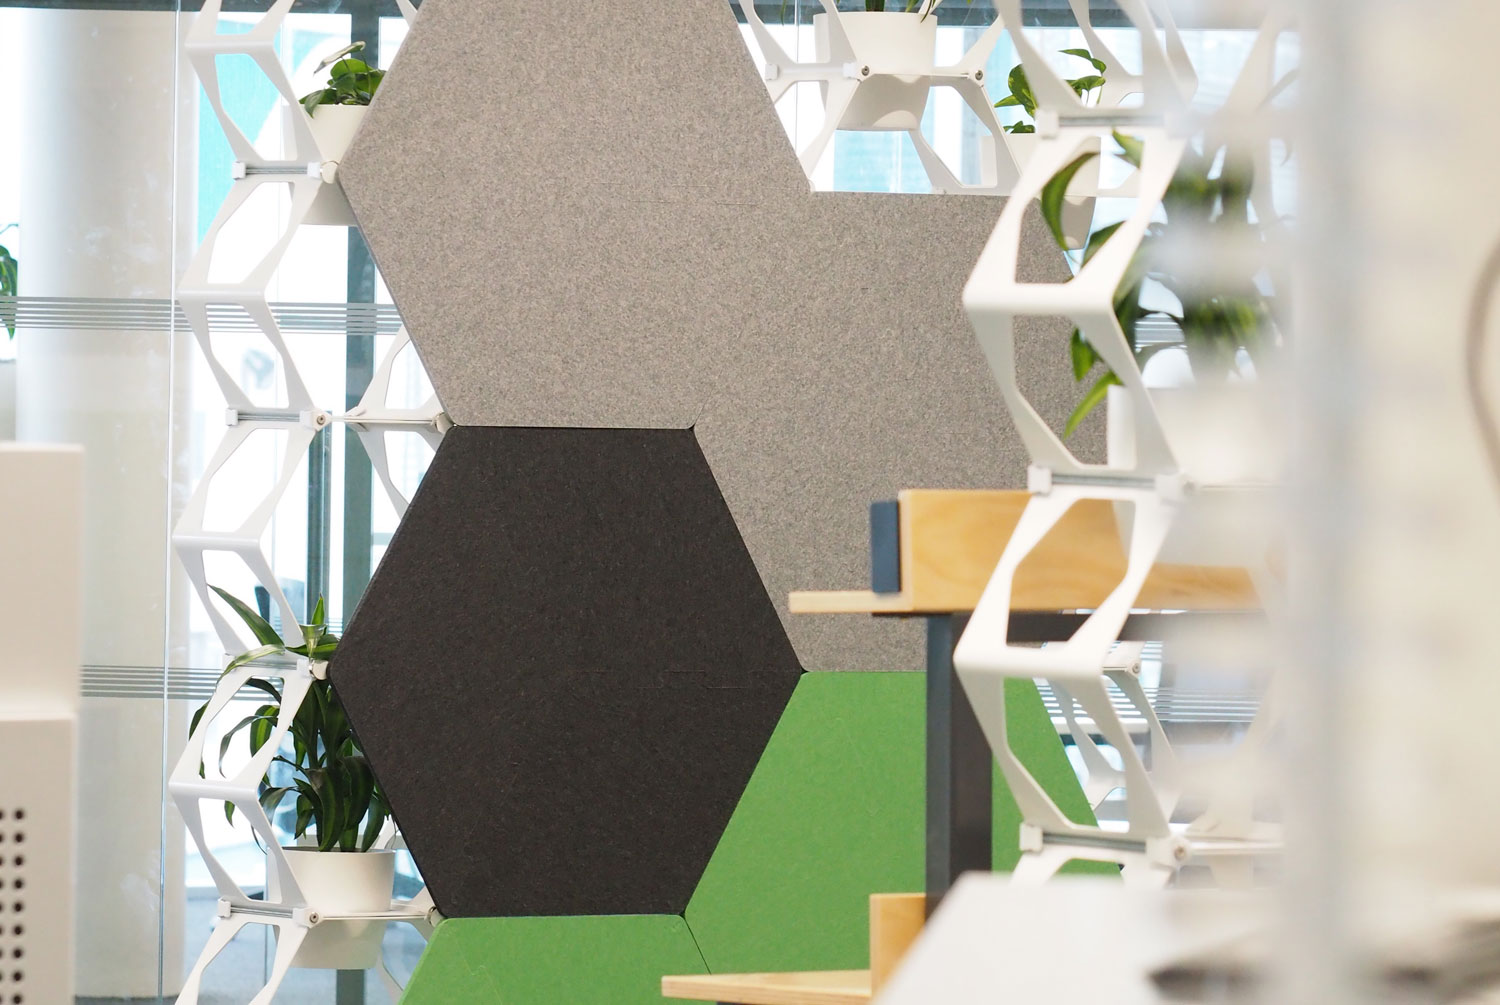 Honeycomb Green wall SOFTCELL Autex Cube acoustic panels